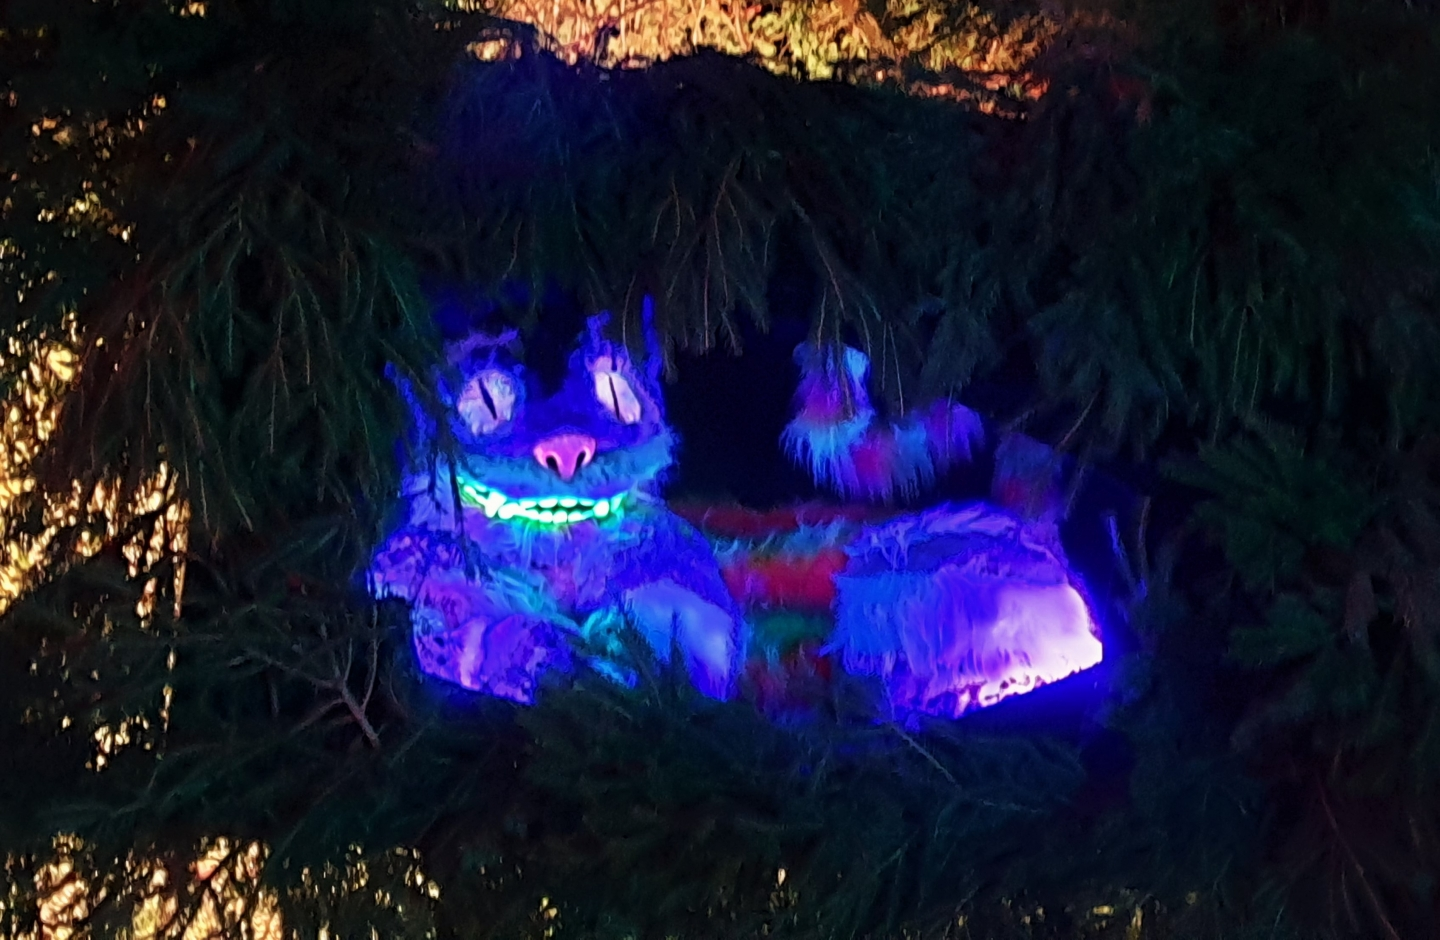 Cheshire cat at Hever castle